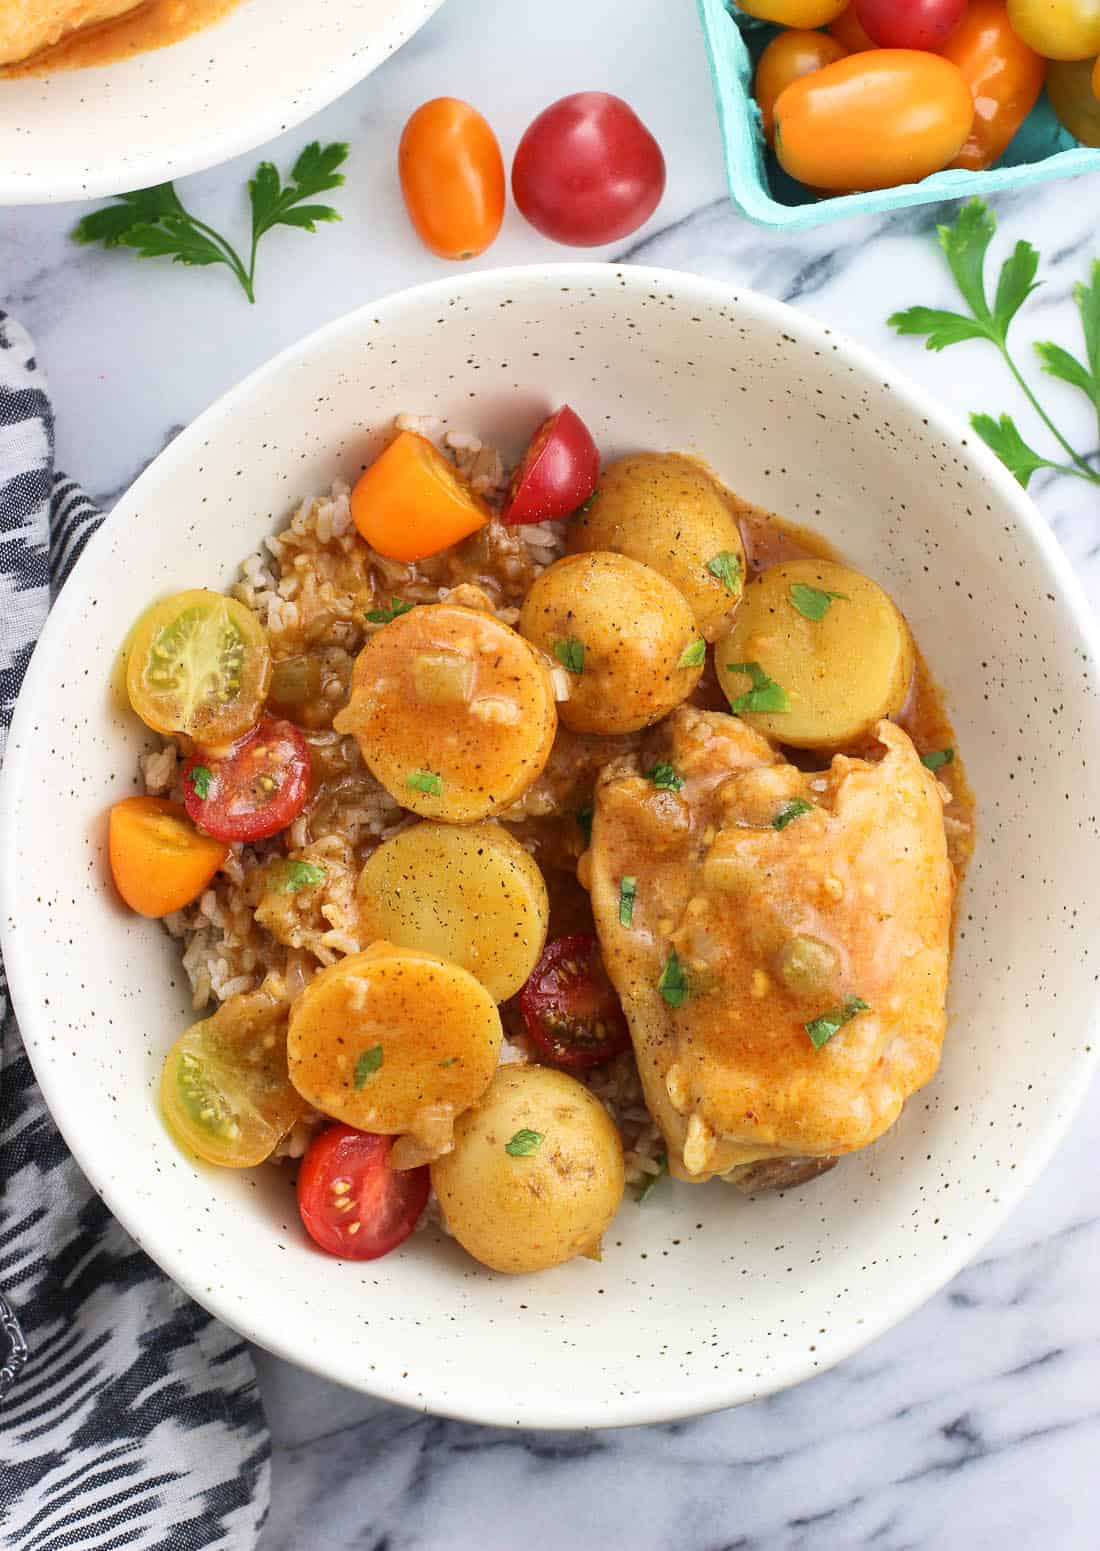 A serving of chicken, potatoes, and tomatoes in a dinner bowl over rice.